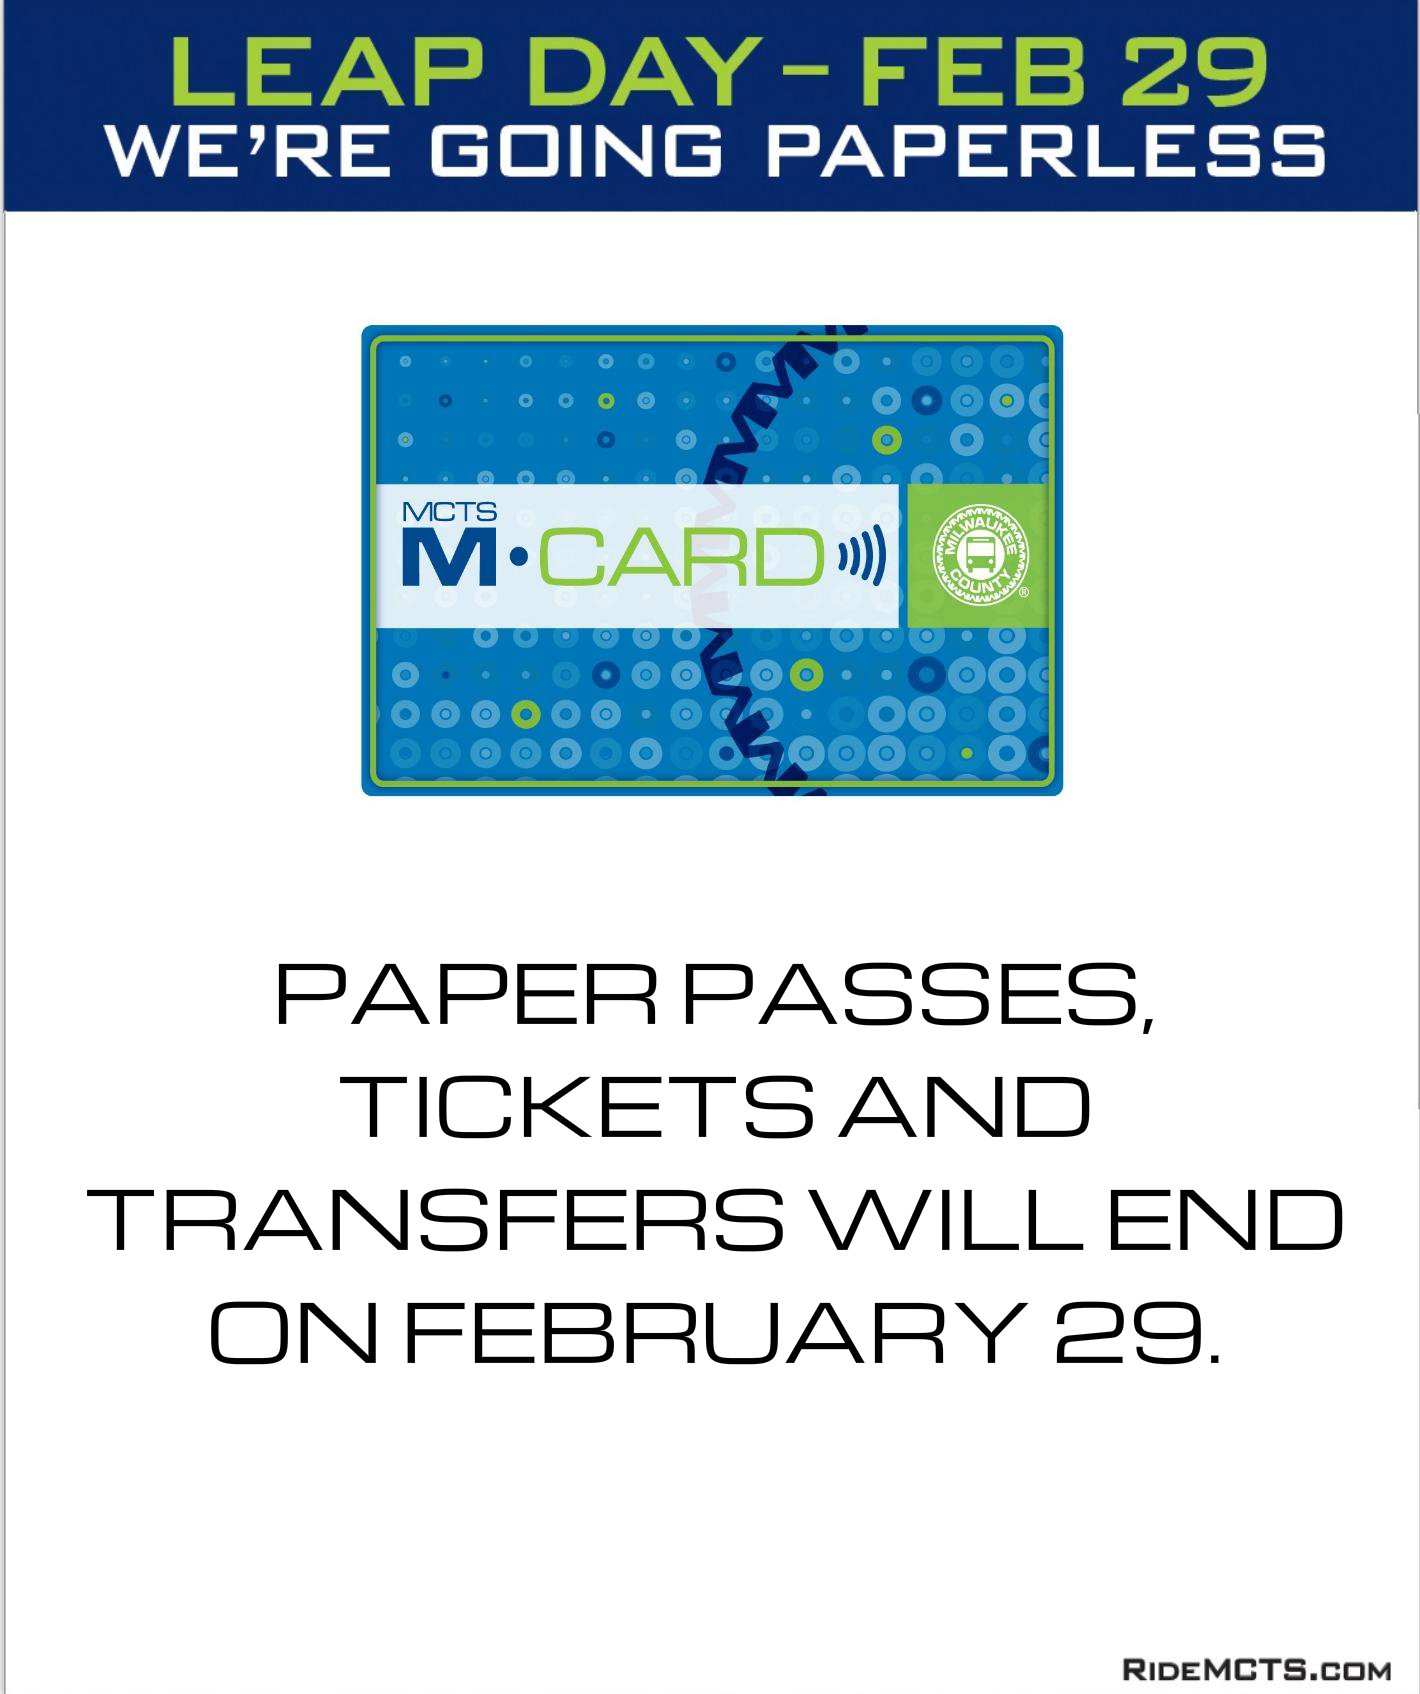 MCTS Announces Timeline for Transition Away from Paper Tickets, Passes and Transfers